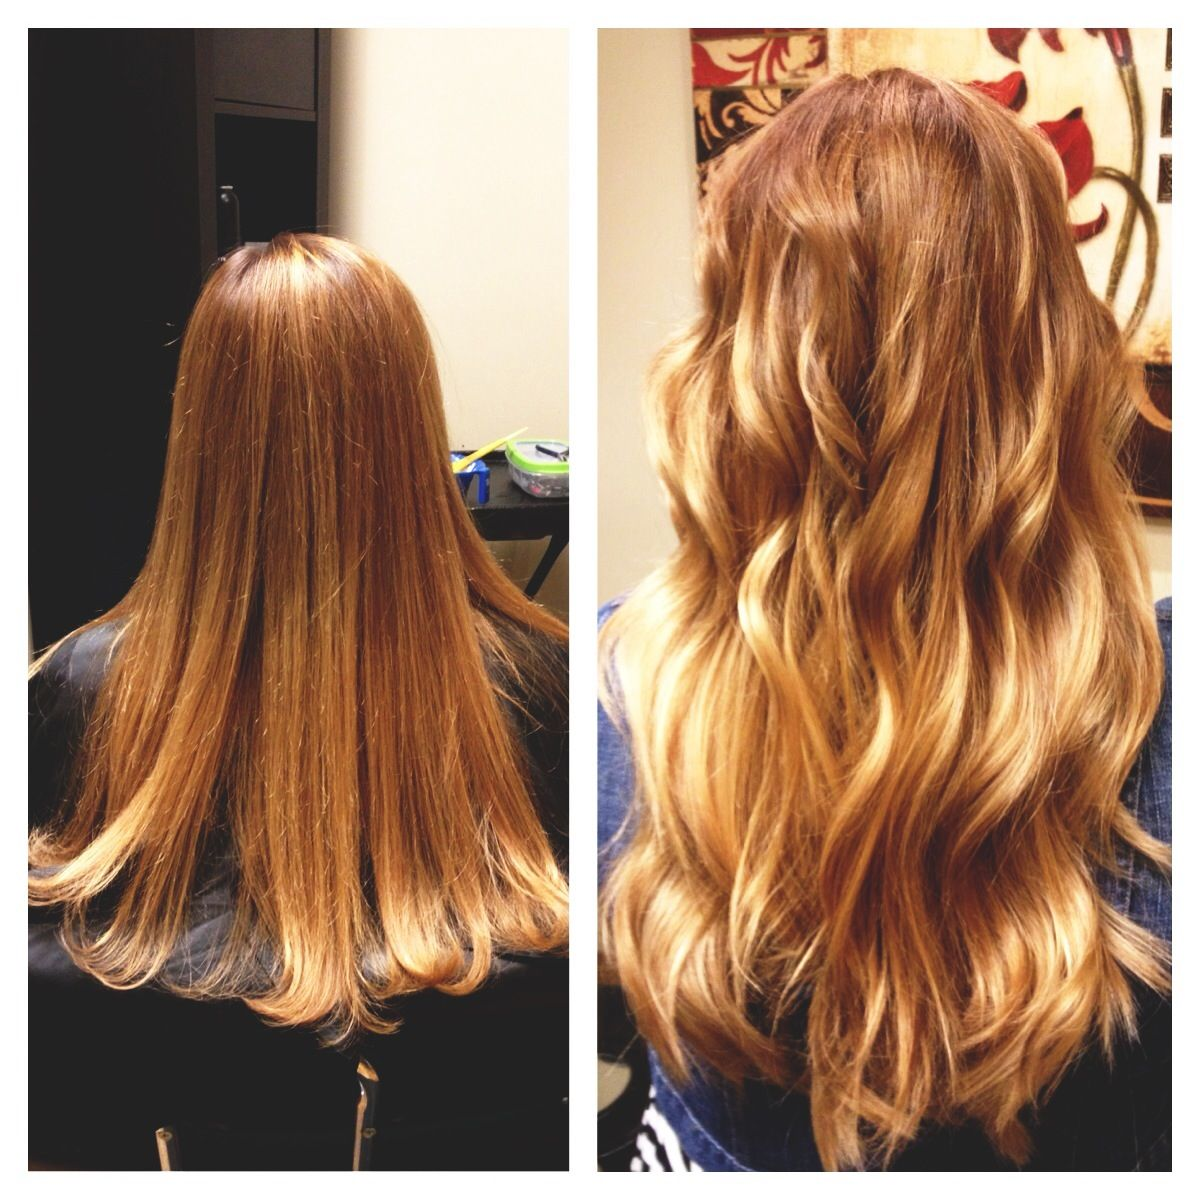 These Extensions Are So Great Add Fullness And Length To Fine Hair